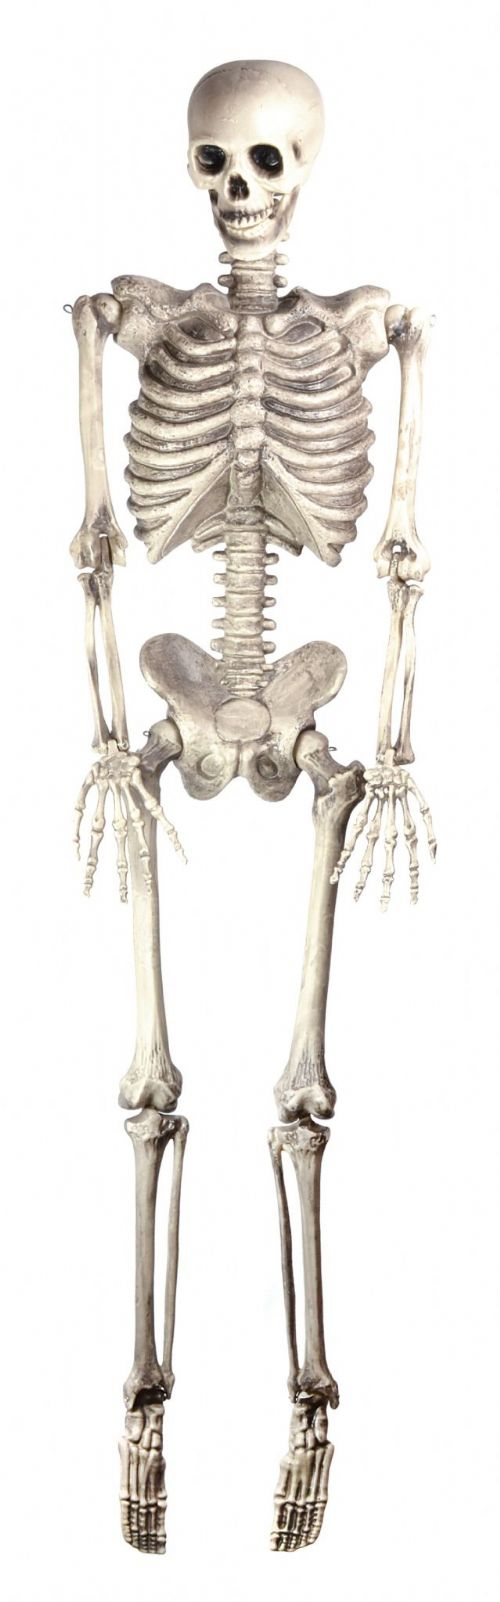 "Halloween Skeleton 60"" Hanging Trick Or Treat Party Decoration"